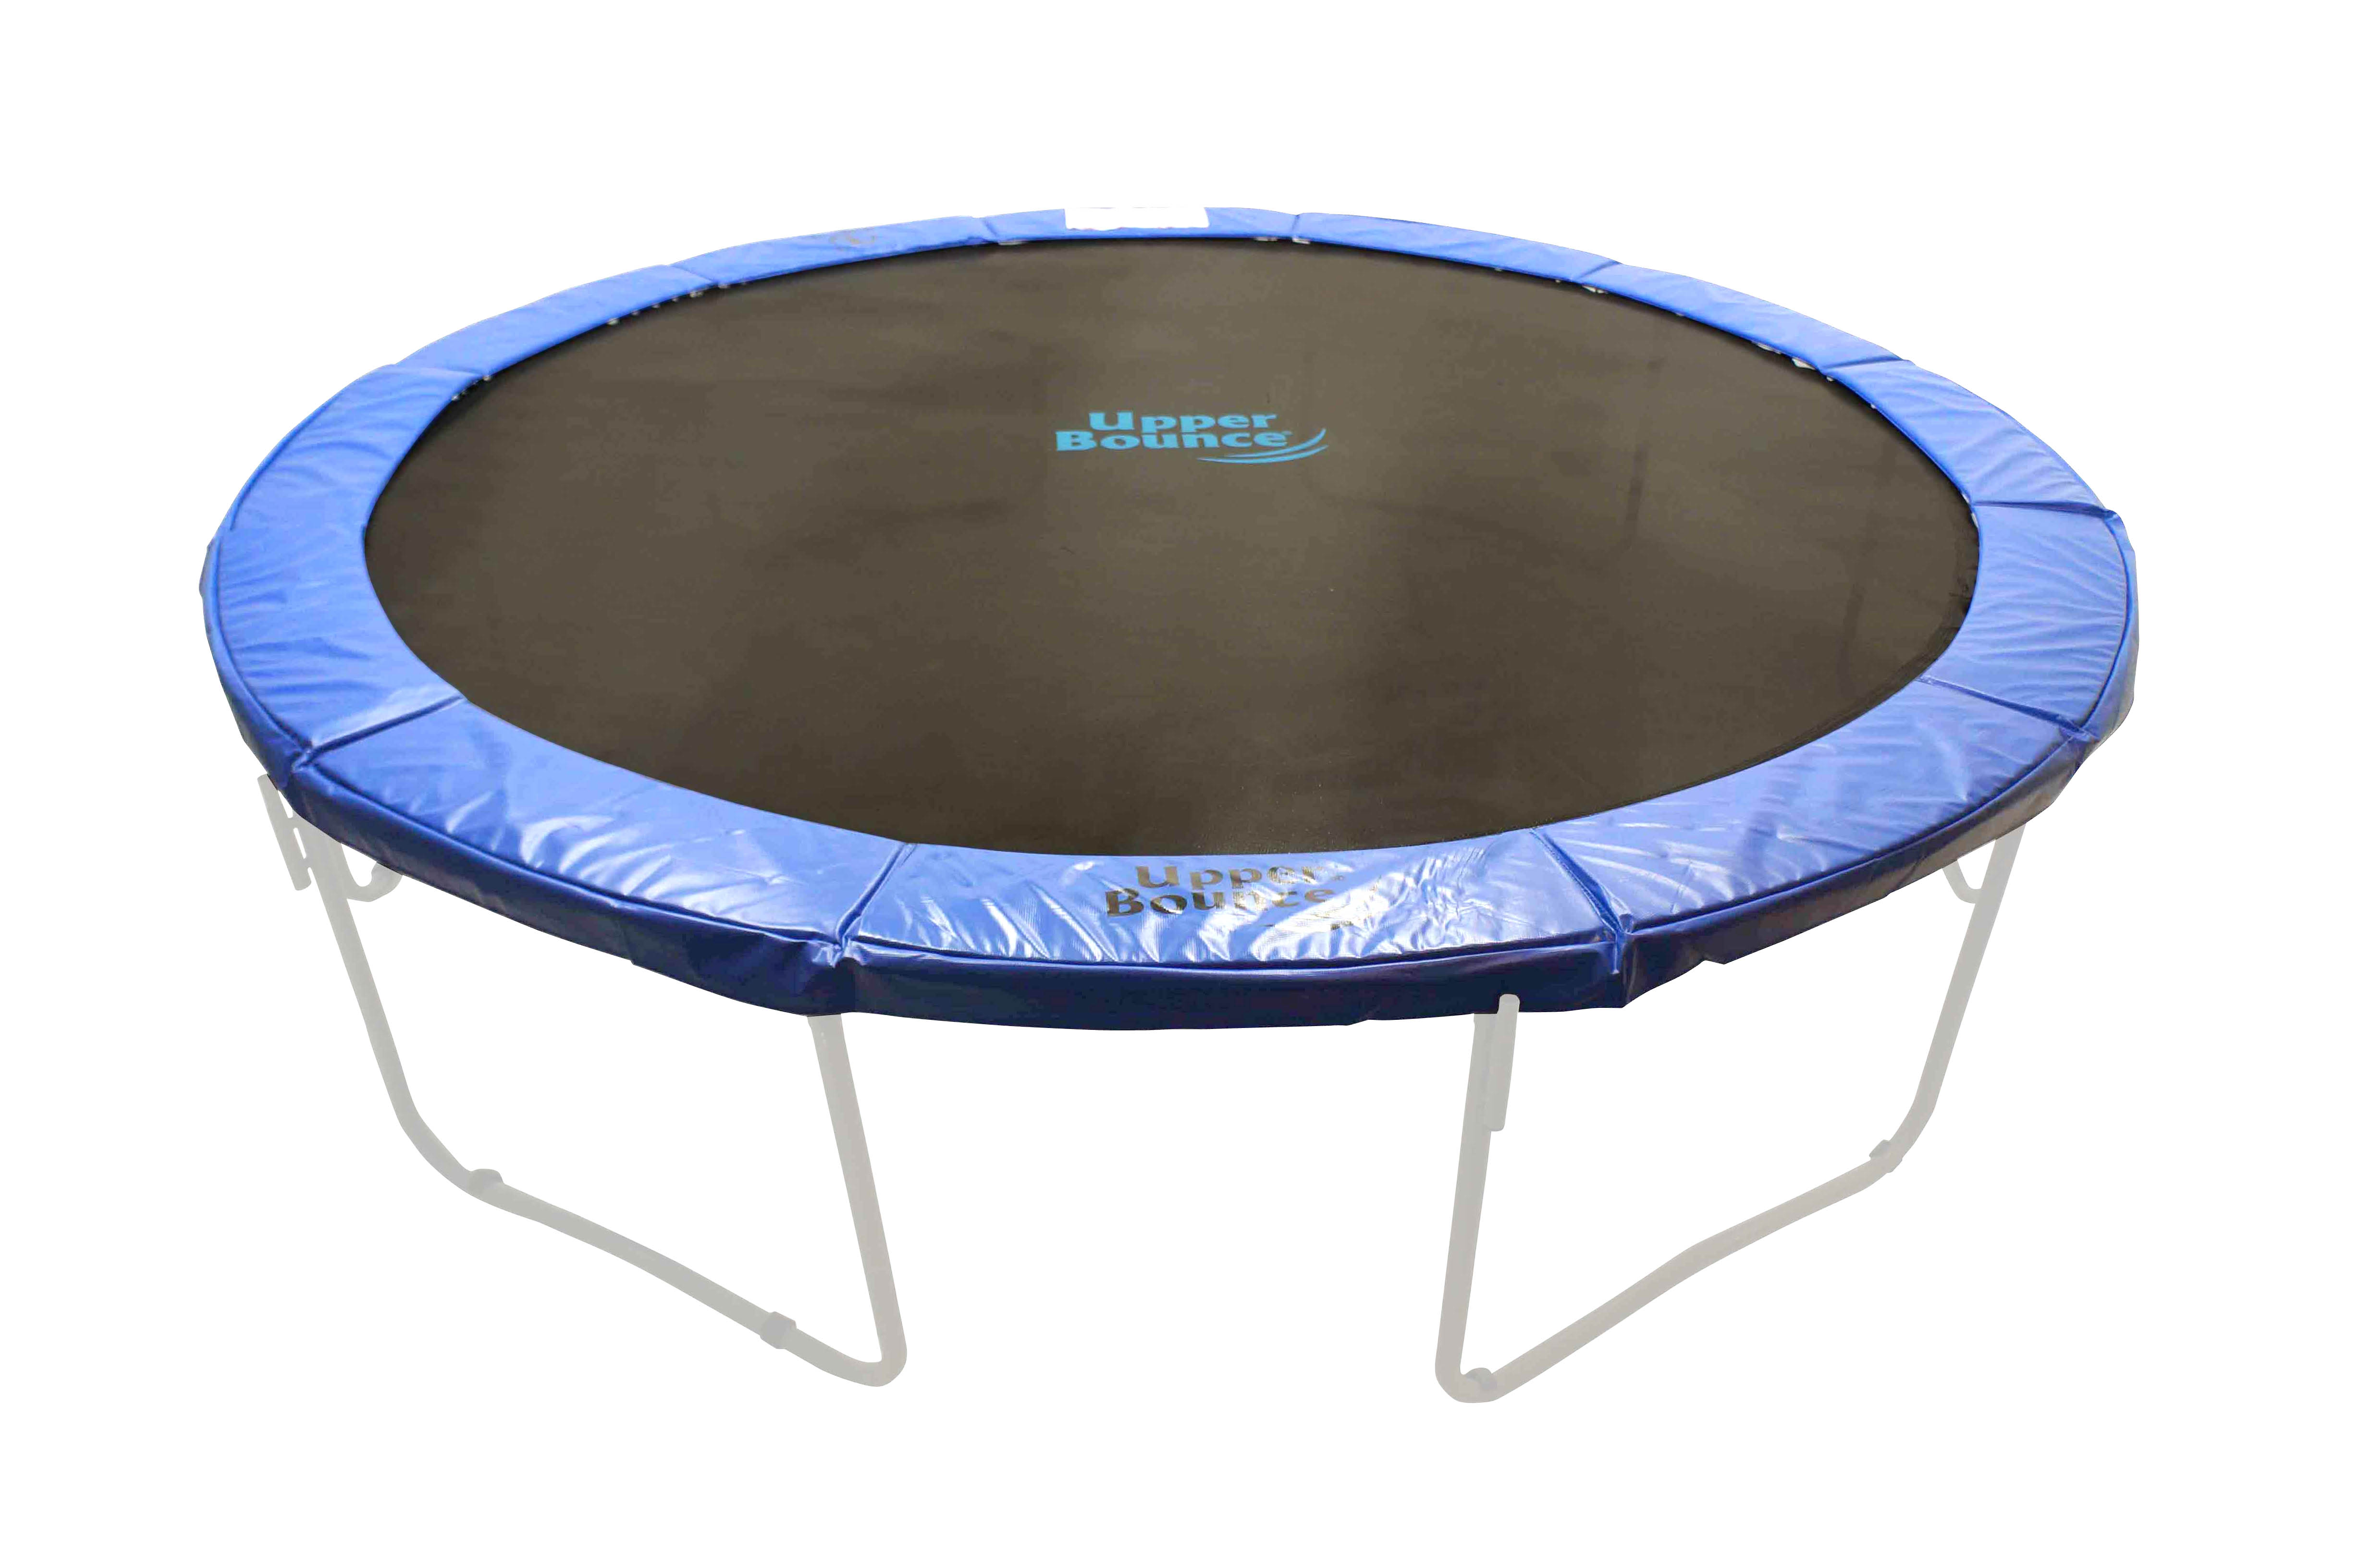 """48"""" Round Foldable Trampoline Safety Pad (Spring Cover) for 8 Legs - Blue"""